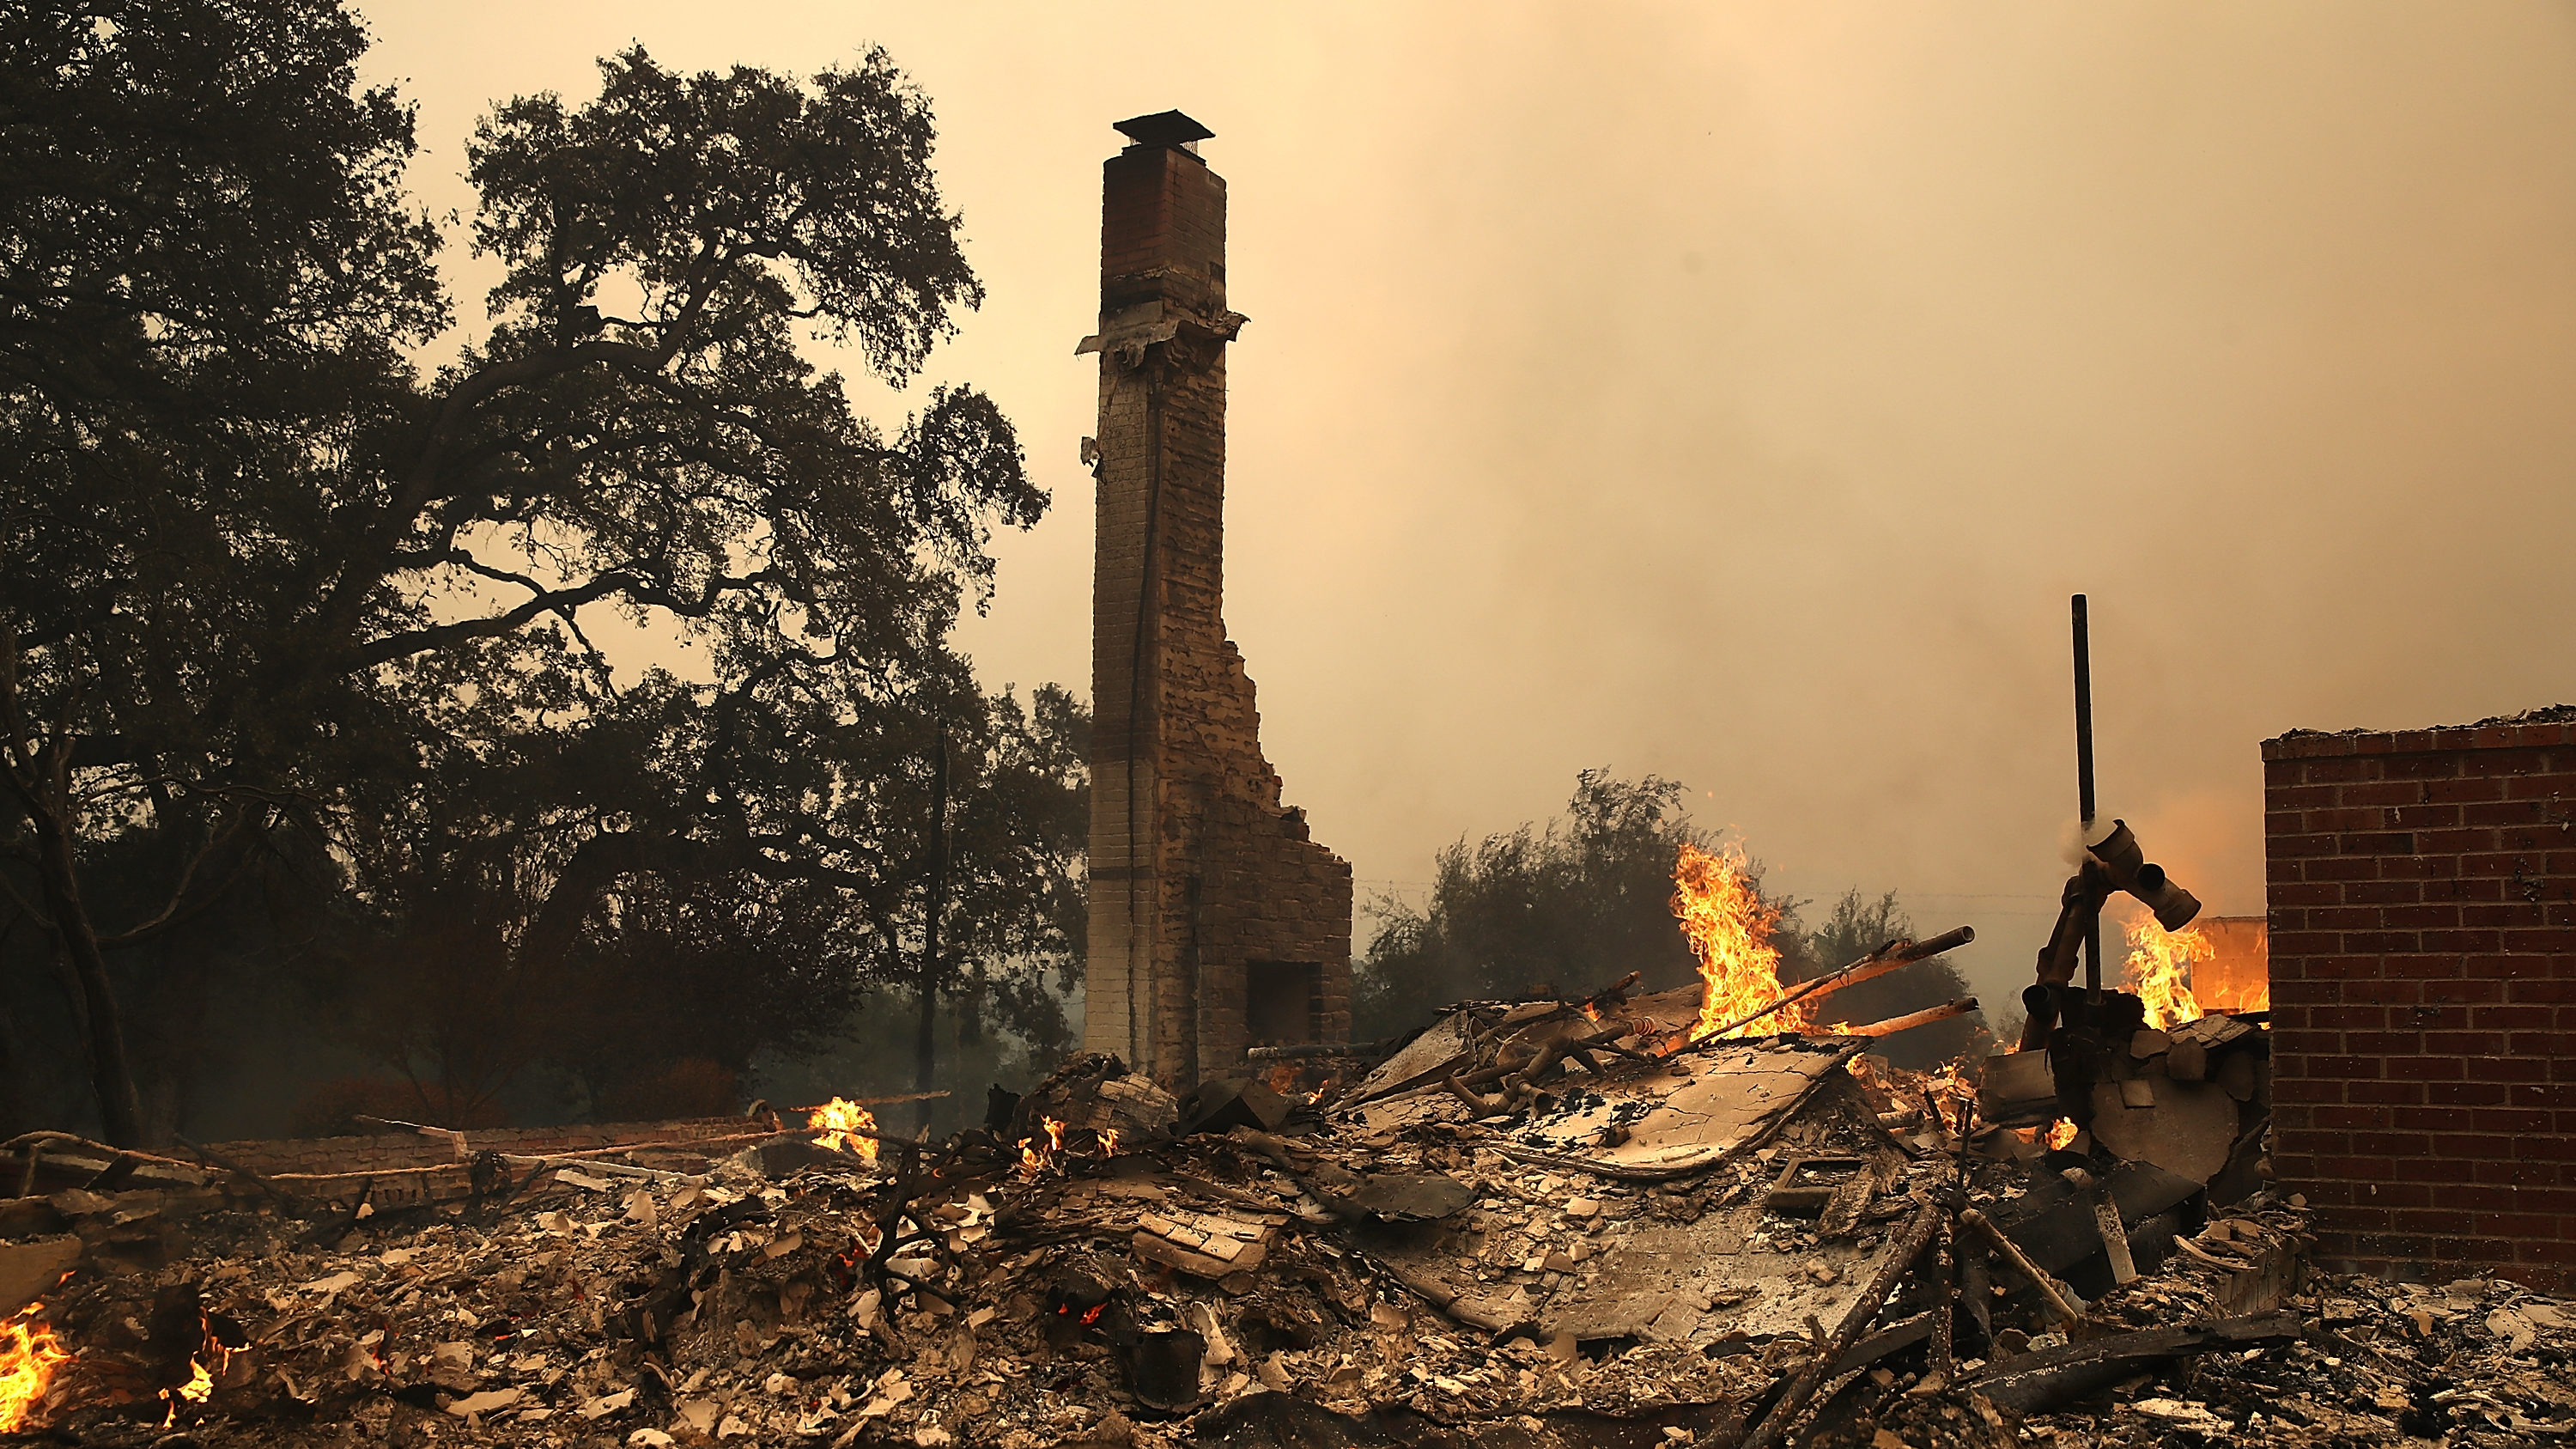 GLEN ELLEN, CA - OCTOBER 09:  The remains of fire damaged homes after an out of control wildfire moved through the area on October 9, 2017 in Glen Ellen, California. Tens of thousands of acres and dozens of homes and businesses have burned in widespread wildfires that are burning in Napa and Sonoma counties.  (Photo by Justin Sullivan/Getty Images)